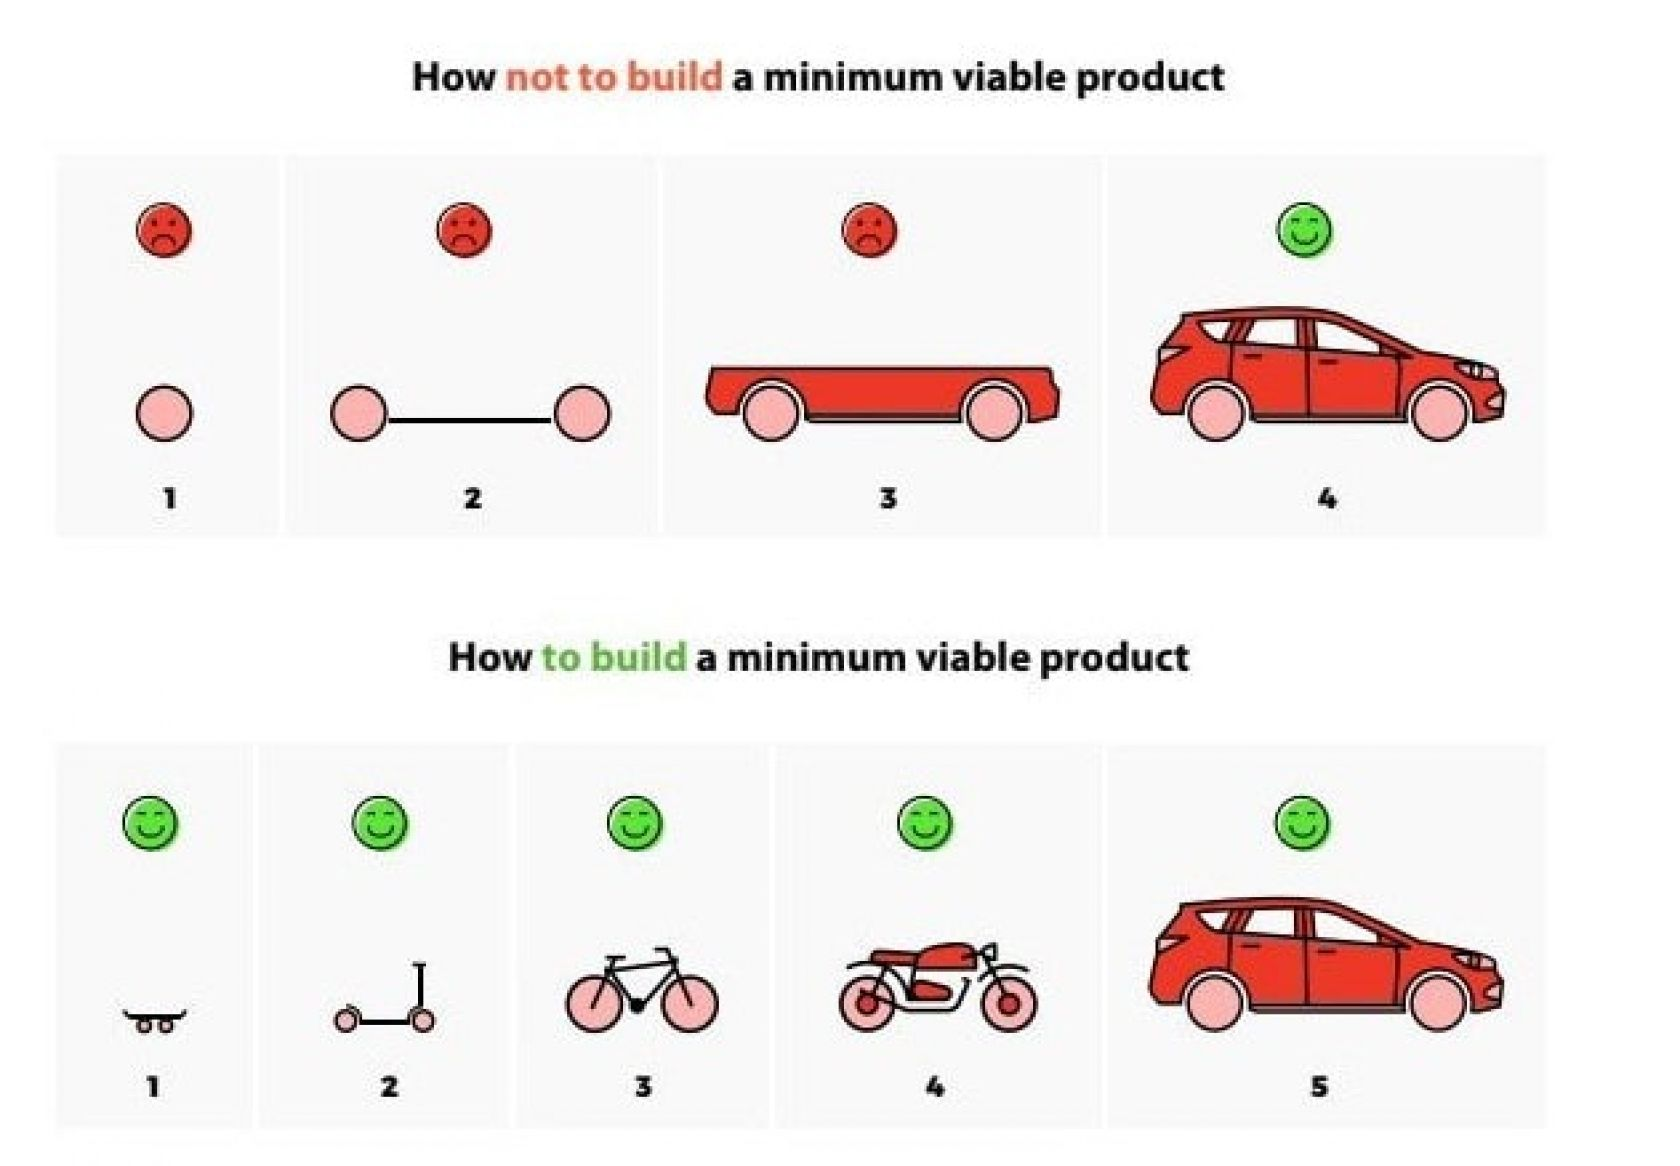 building minimal viable products - HD1680×1166